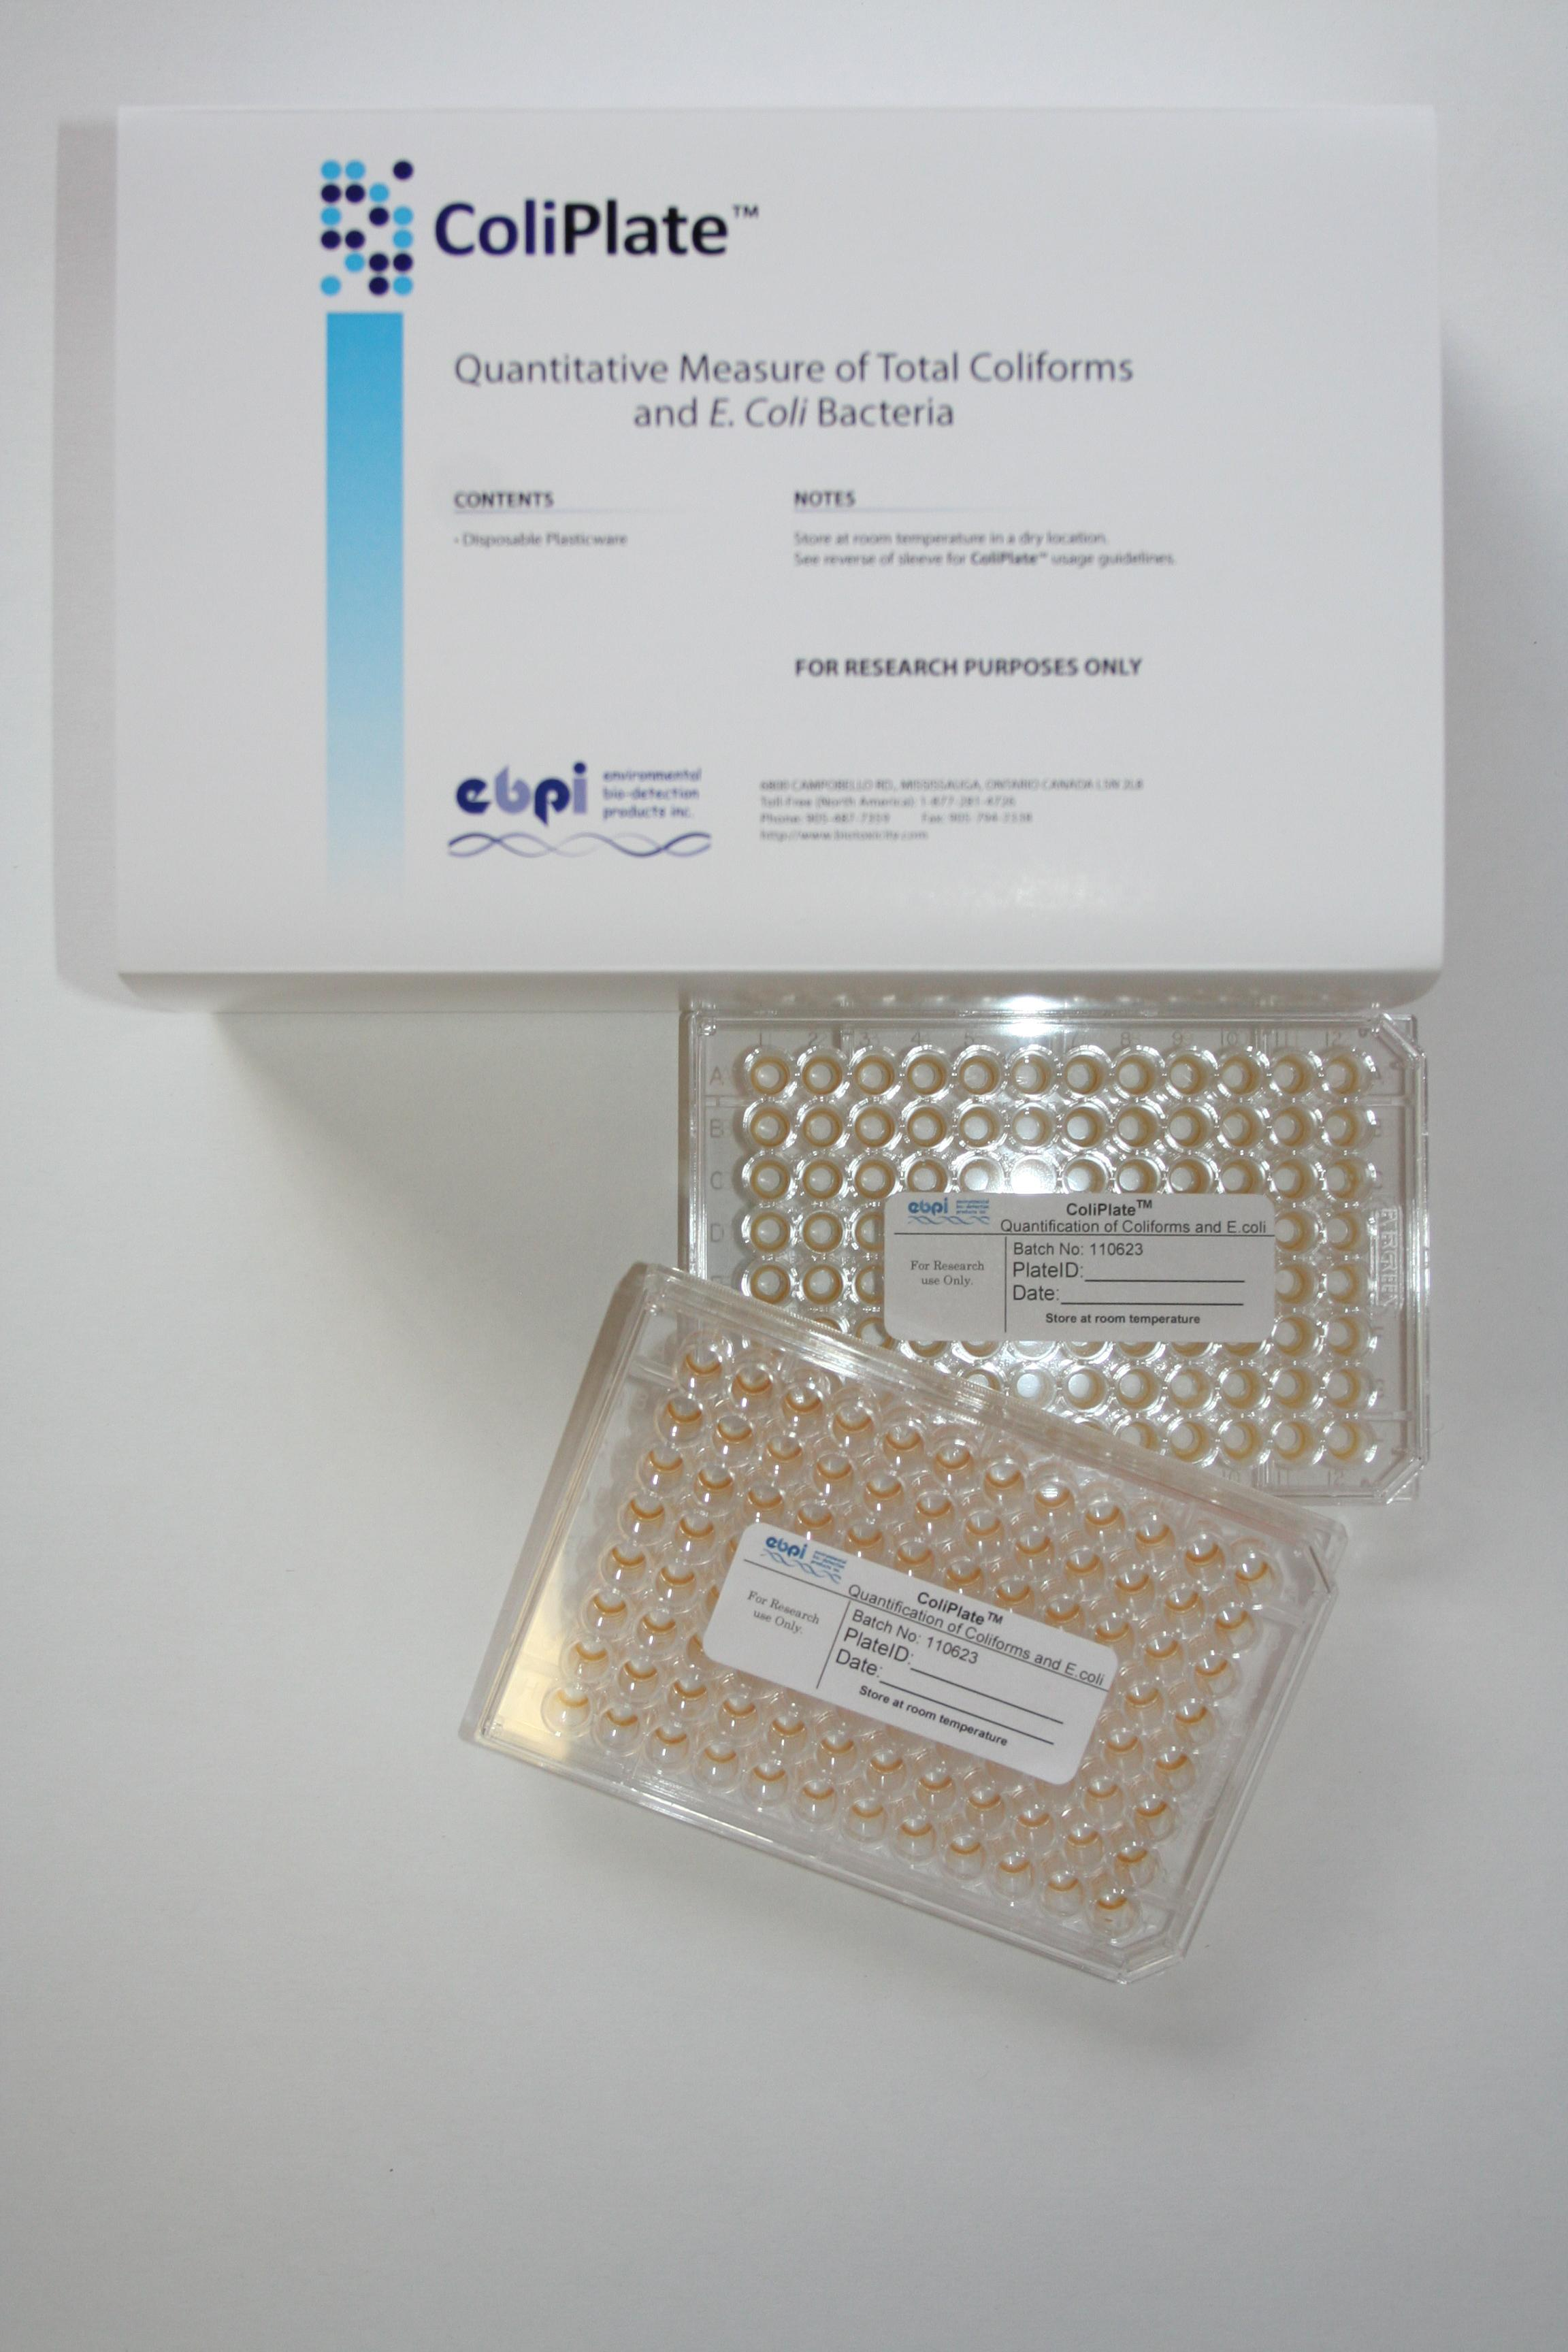 E coli and bacterial testing kit